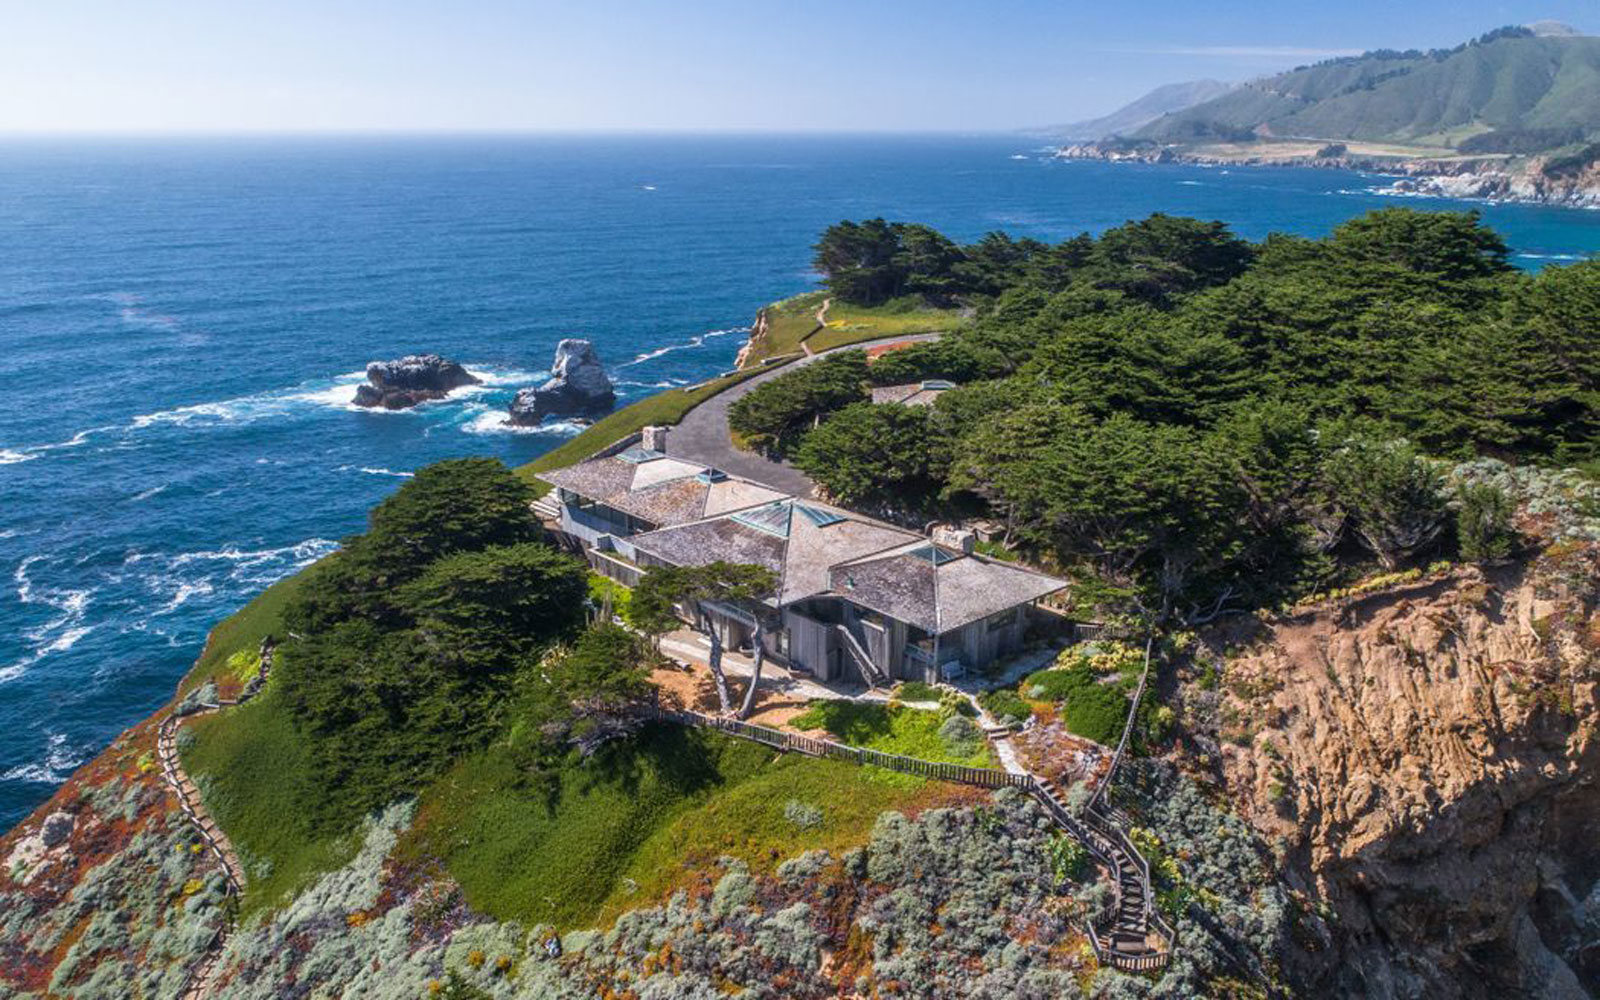 This California Dream House Has the Most Iconic View of Big Sur — and It's for Sale